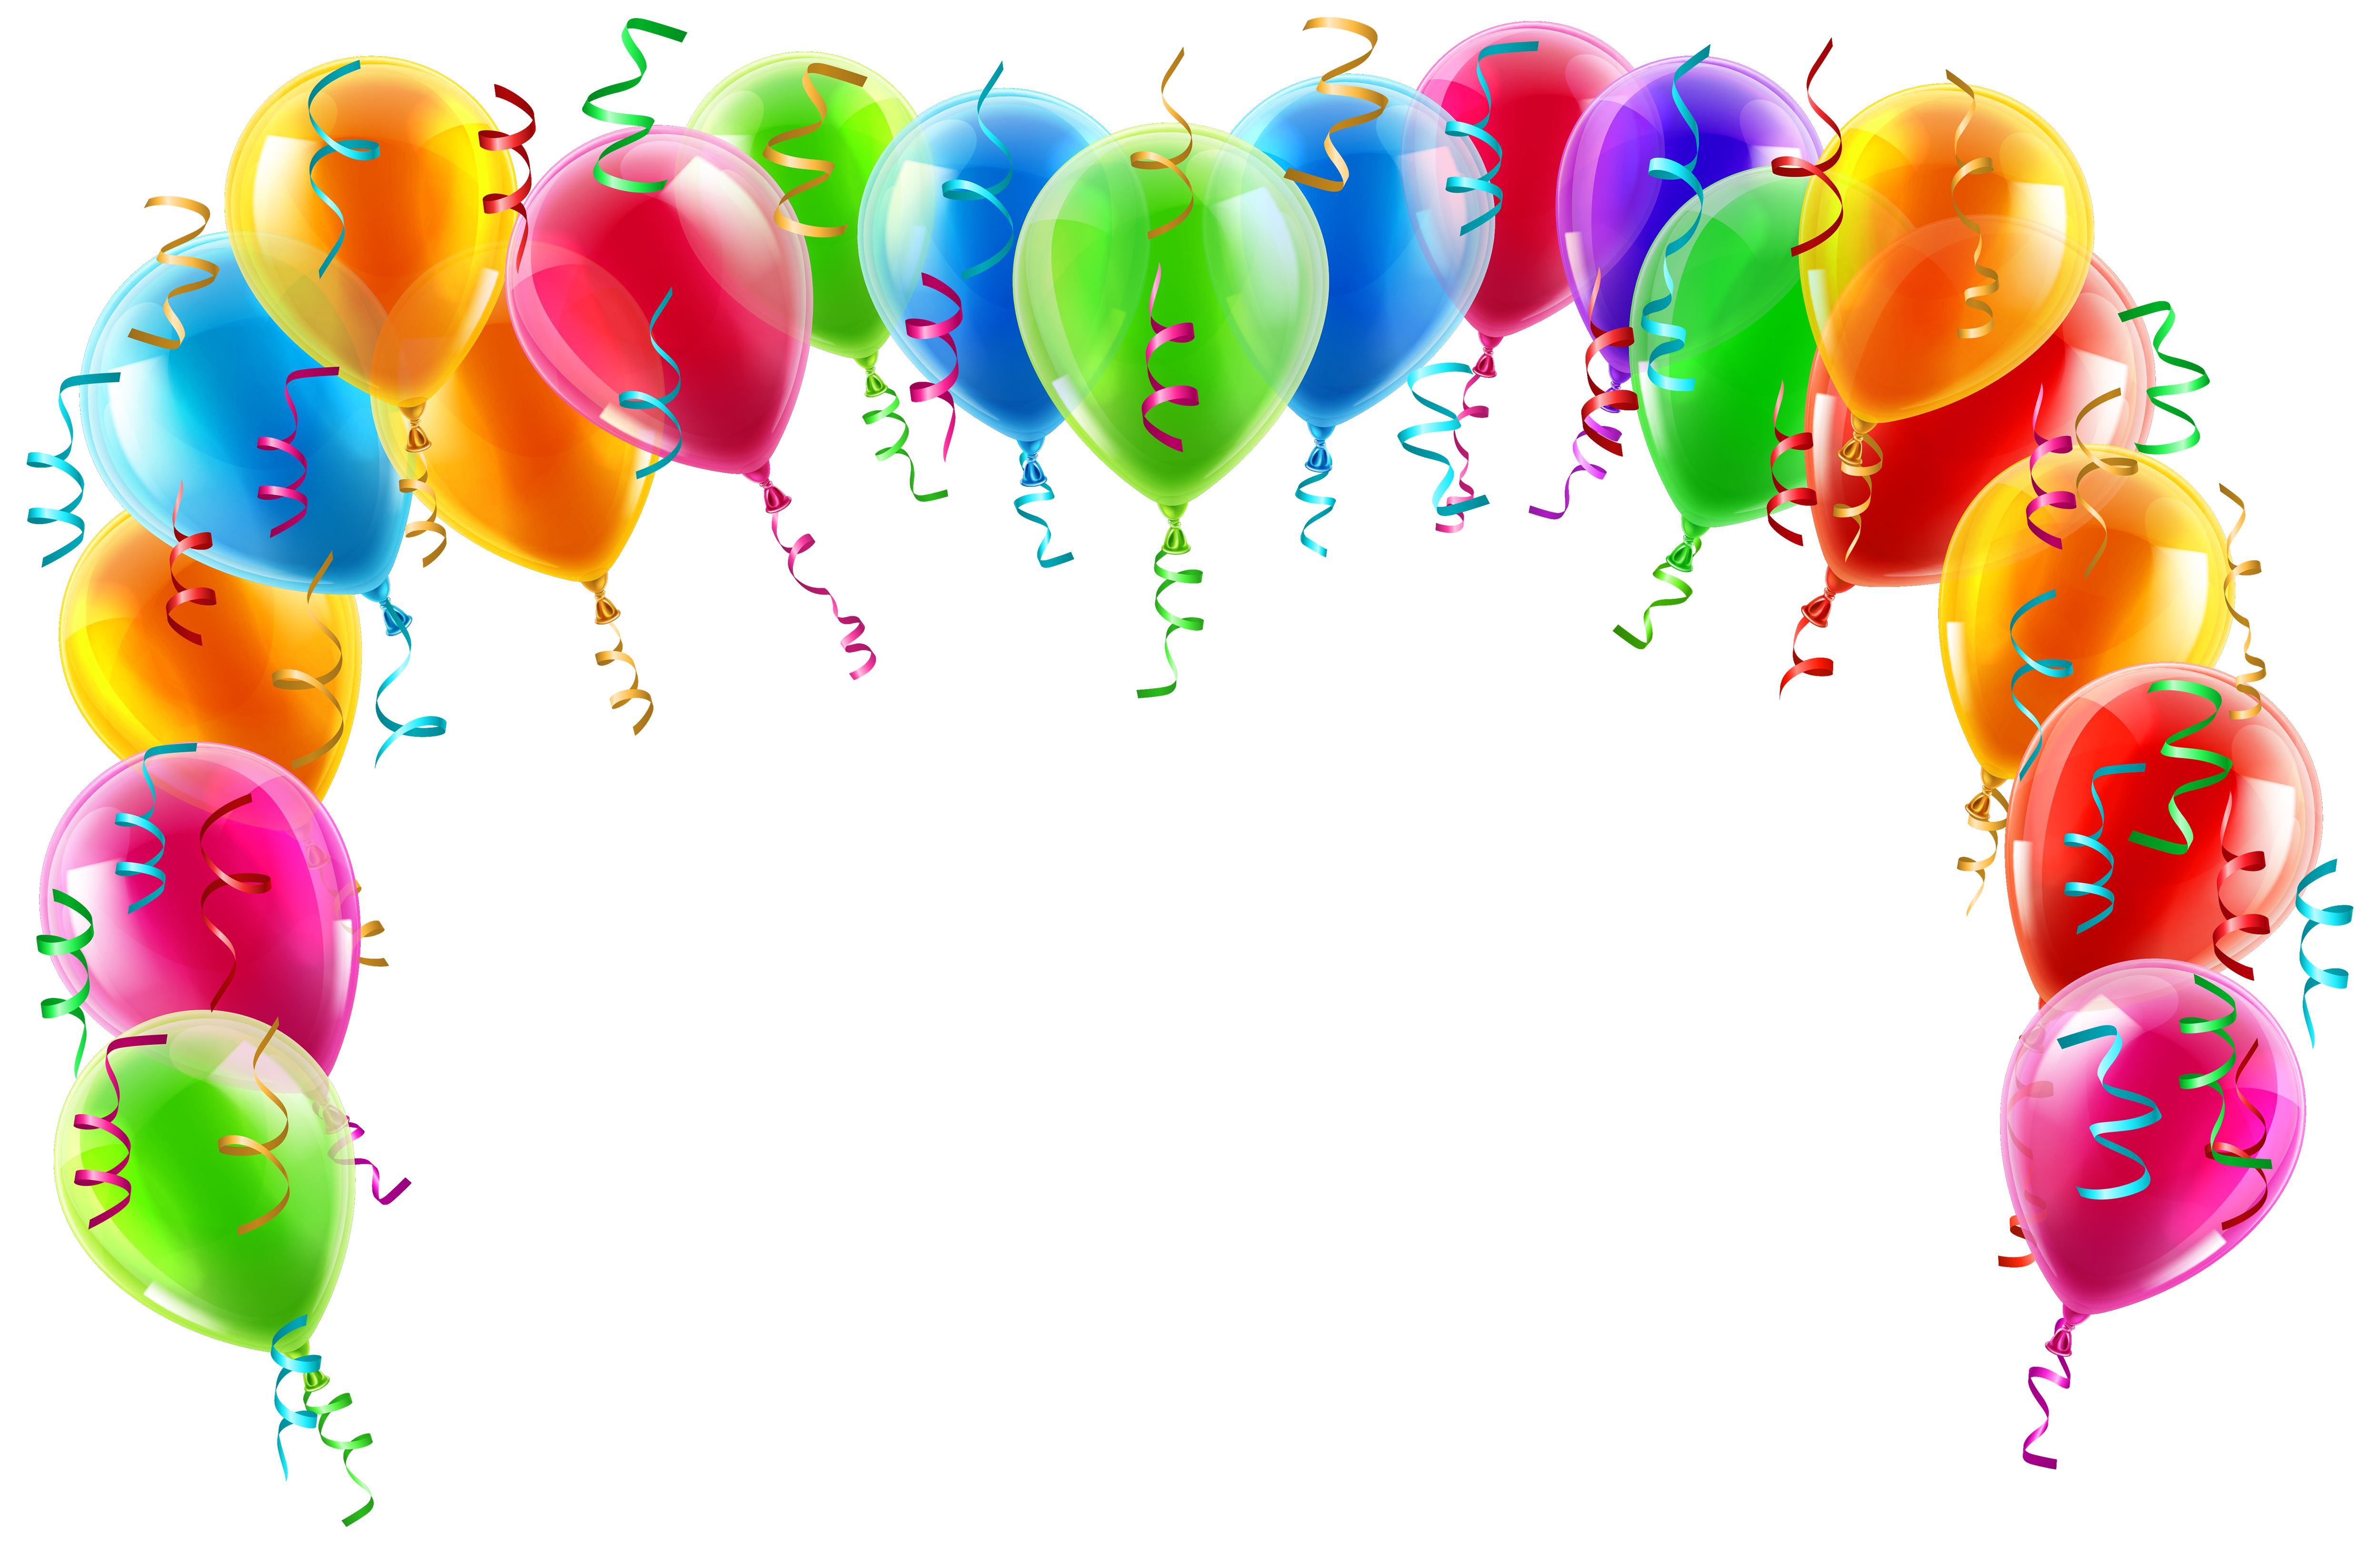 Balloon border png. Colorful arch clipart picture